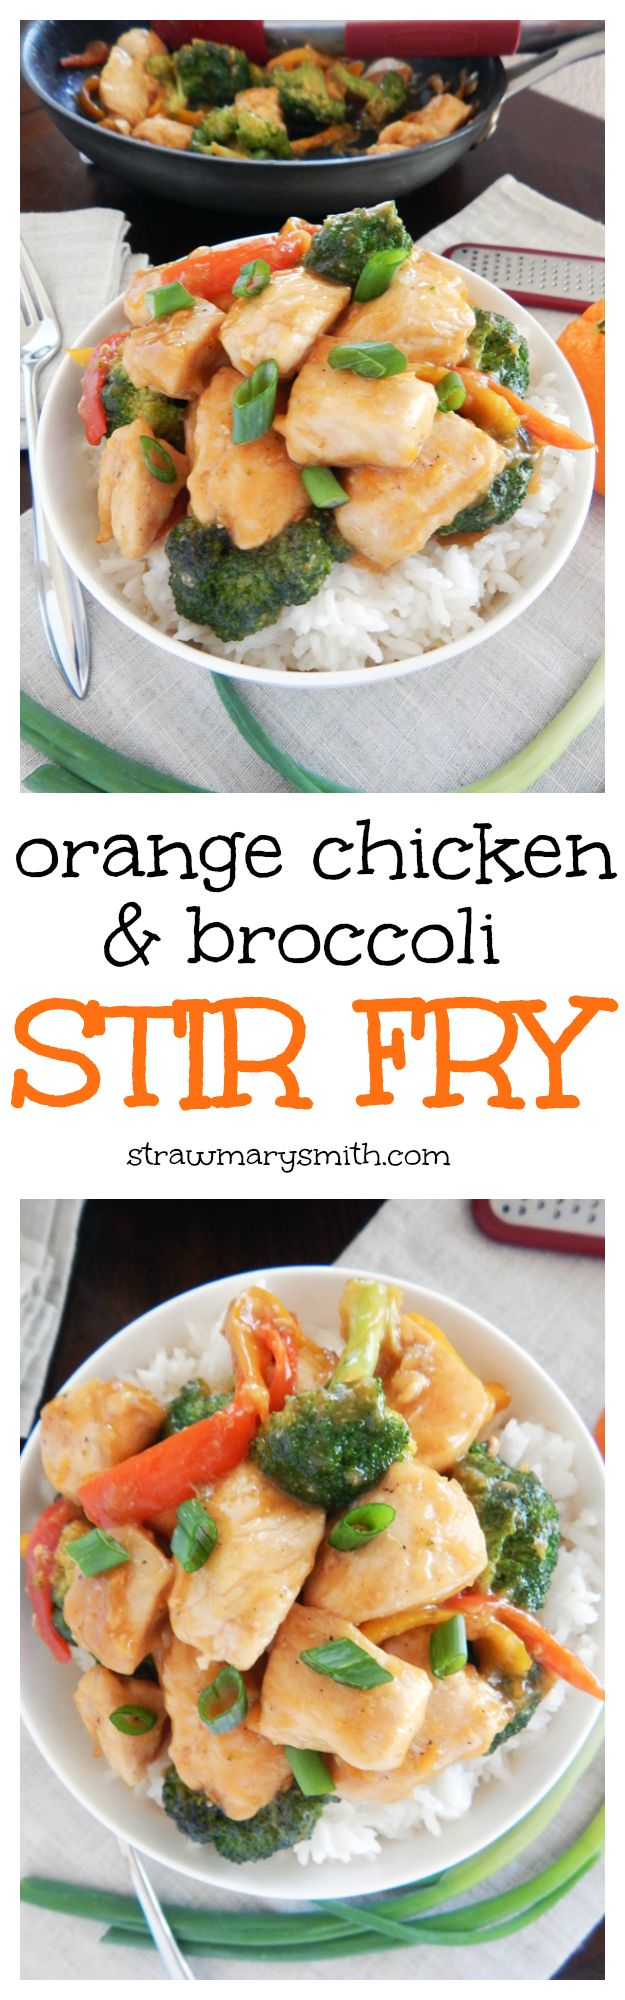 Orange Chicken & Broccoli Stir Fry is a quick and colorful weeknight dinner for two.